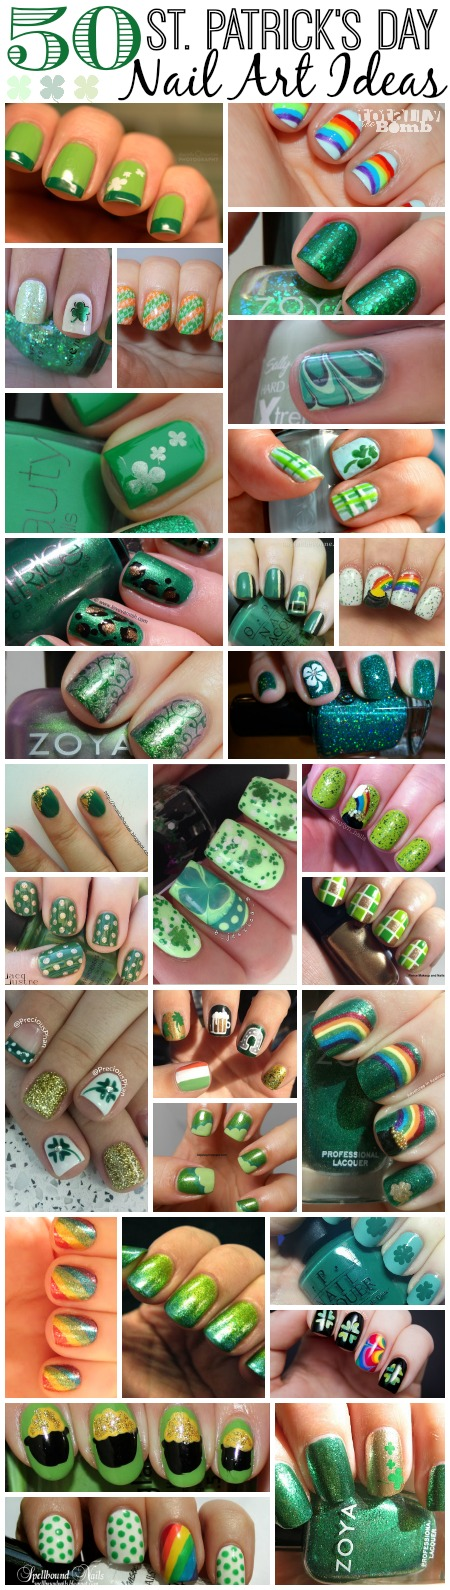 50 St Patricks Day Nail Art Ideas1 50 Awesome St. Patrick's Day Nail Art Ideas